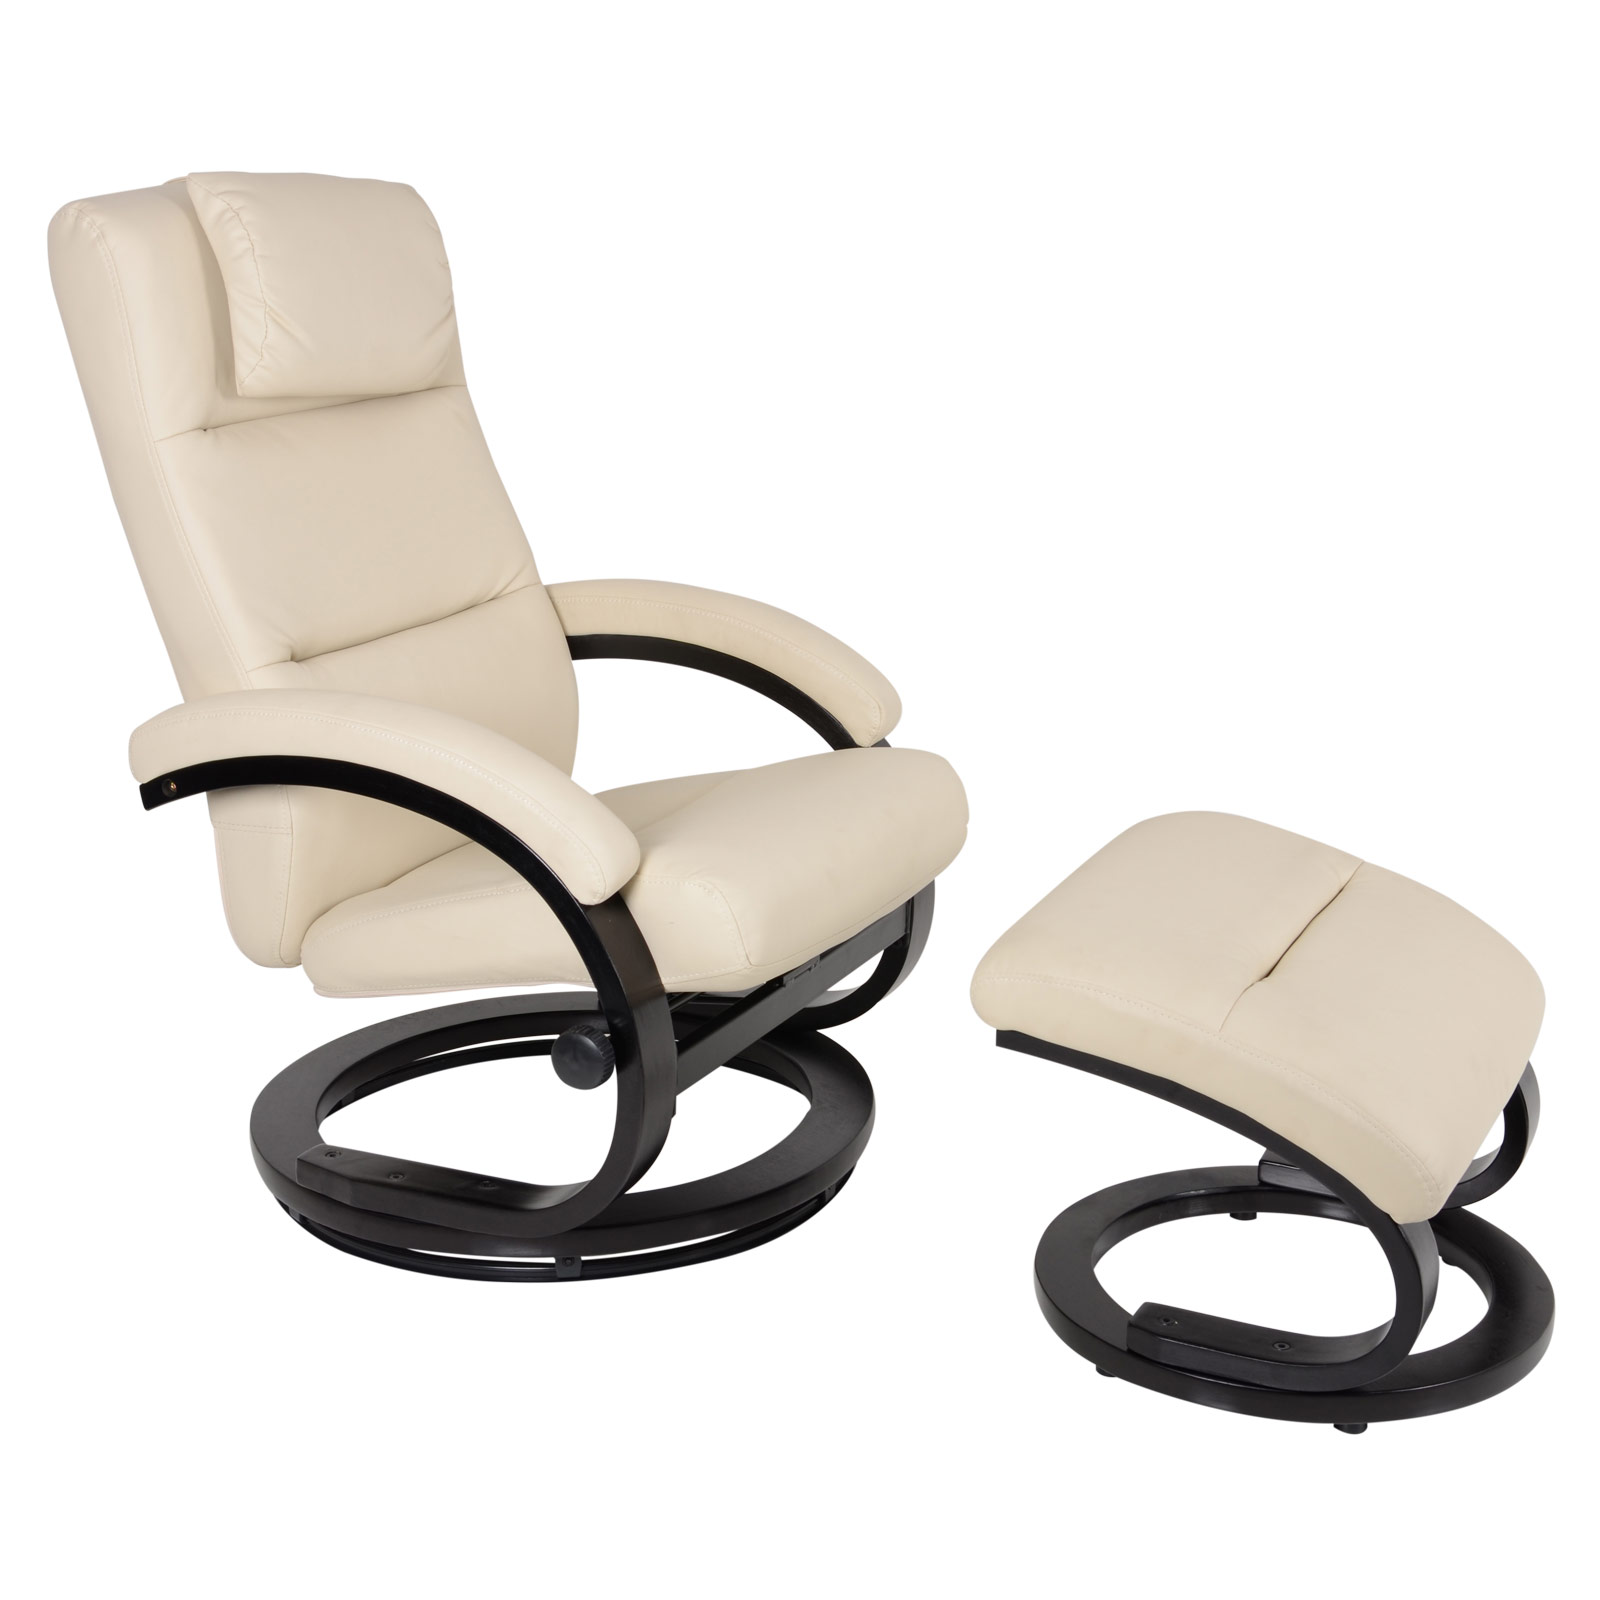 PU Leather Relaxer Chair Lounger Padded Armchair Recliner